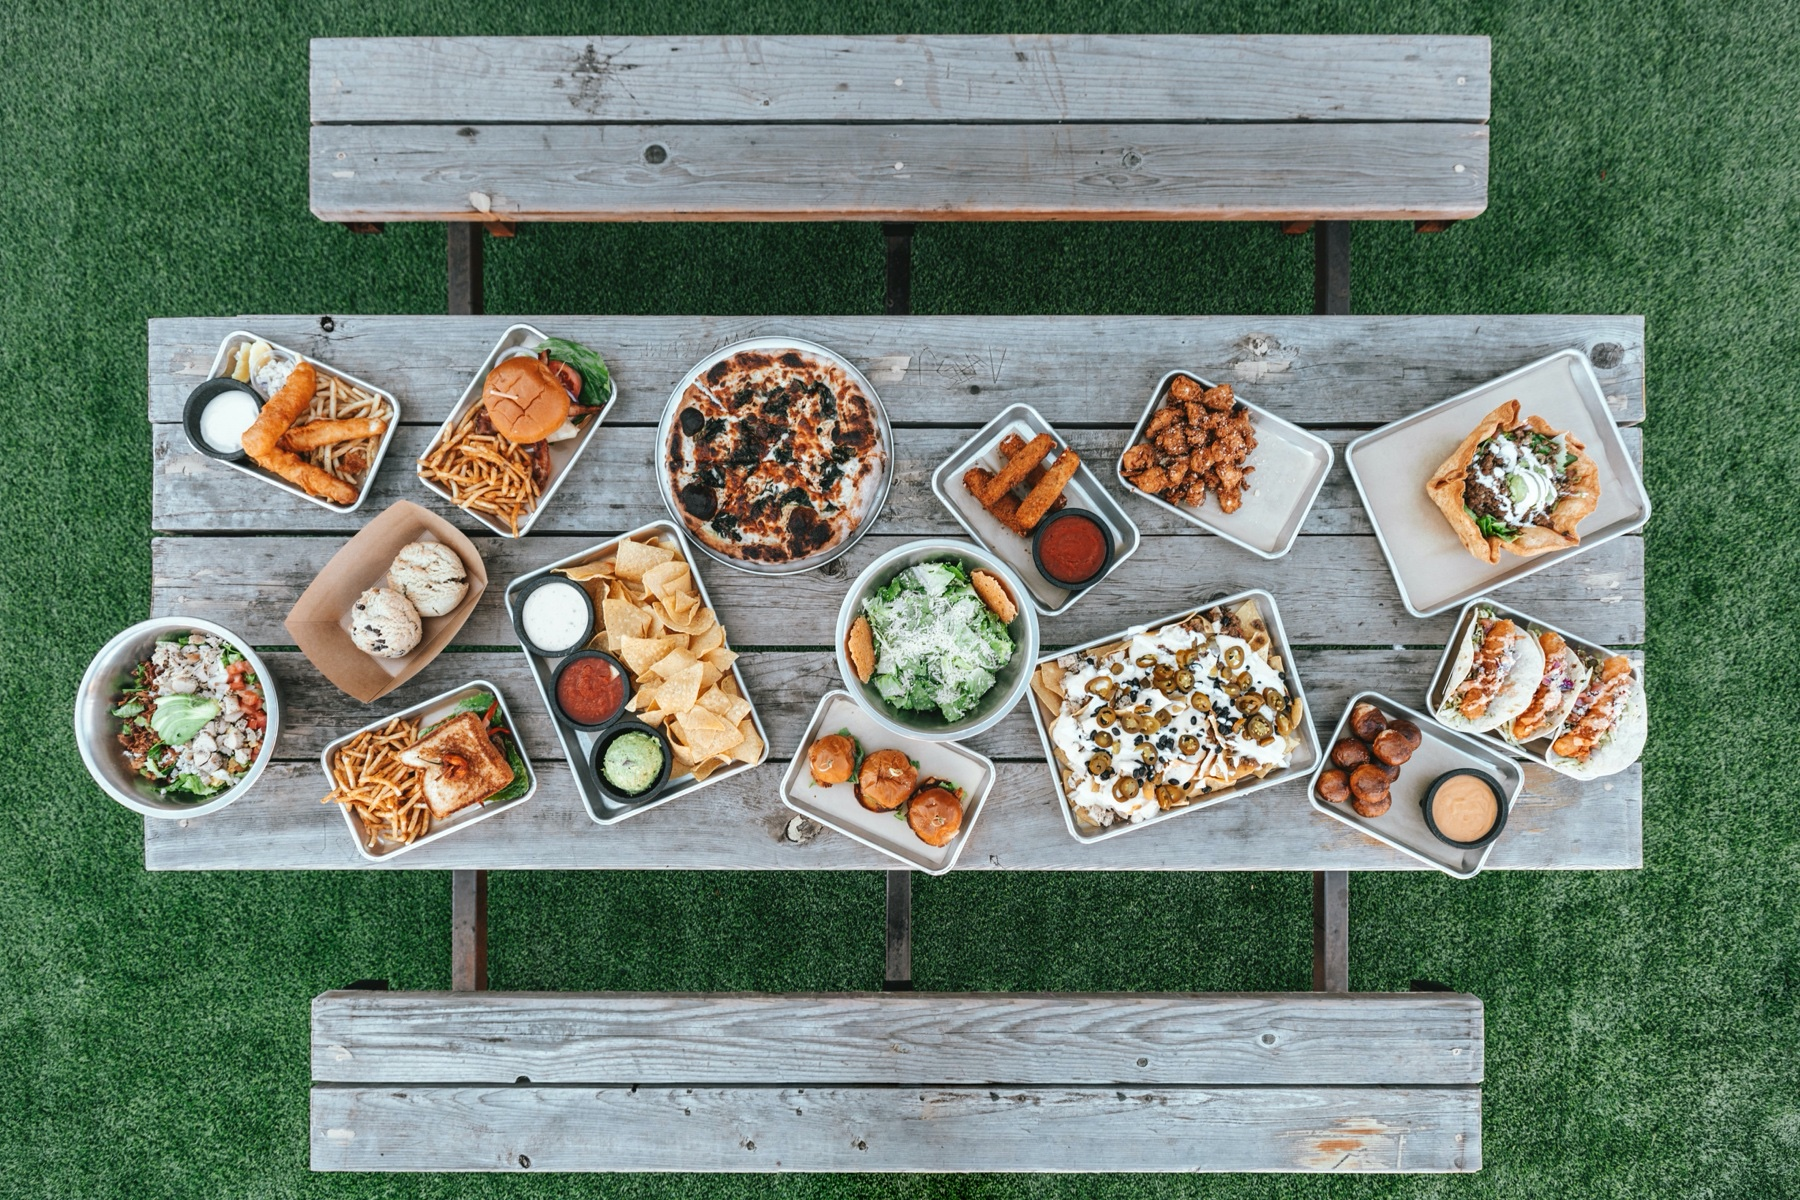 Aerial view of picnic table with various food items displayed on it.